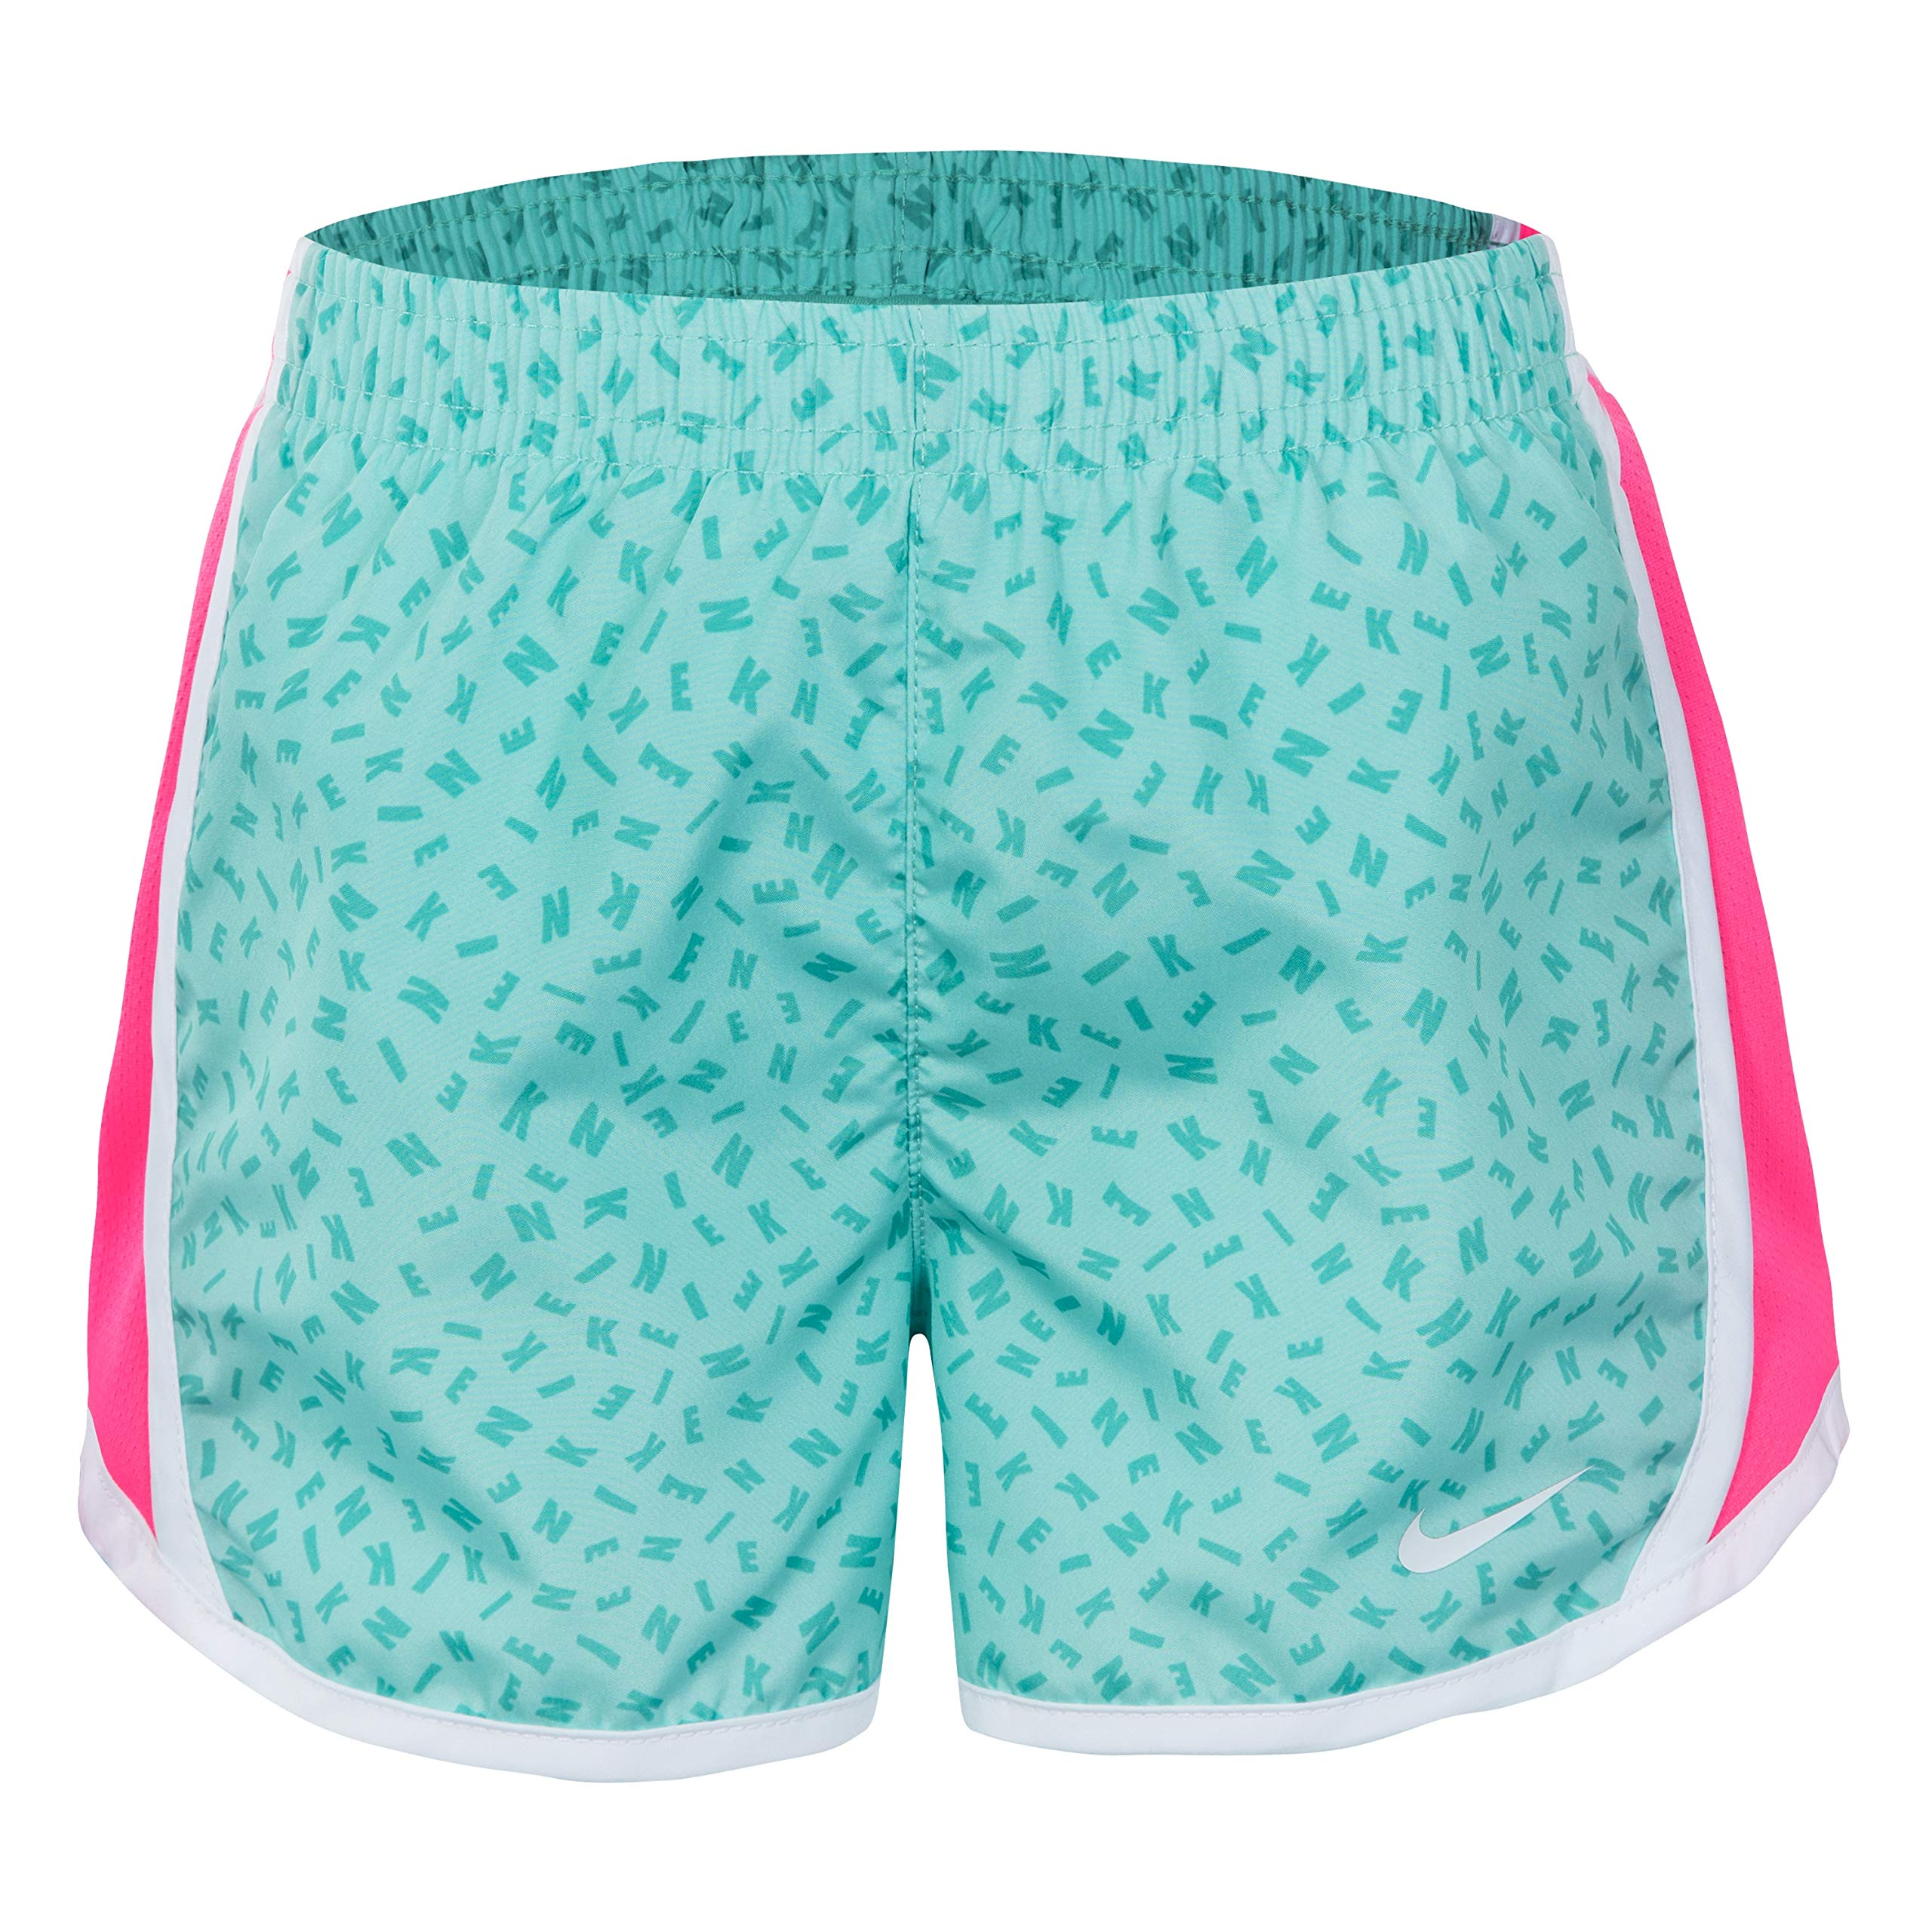 NIKE Children's Apparel Girls' Little Dri-FIT Tempo Shorts, Kinetic Green, 6X by NIKE Children's Apparel